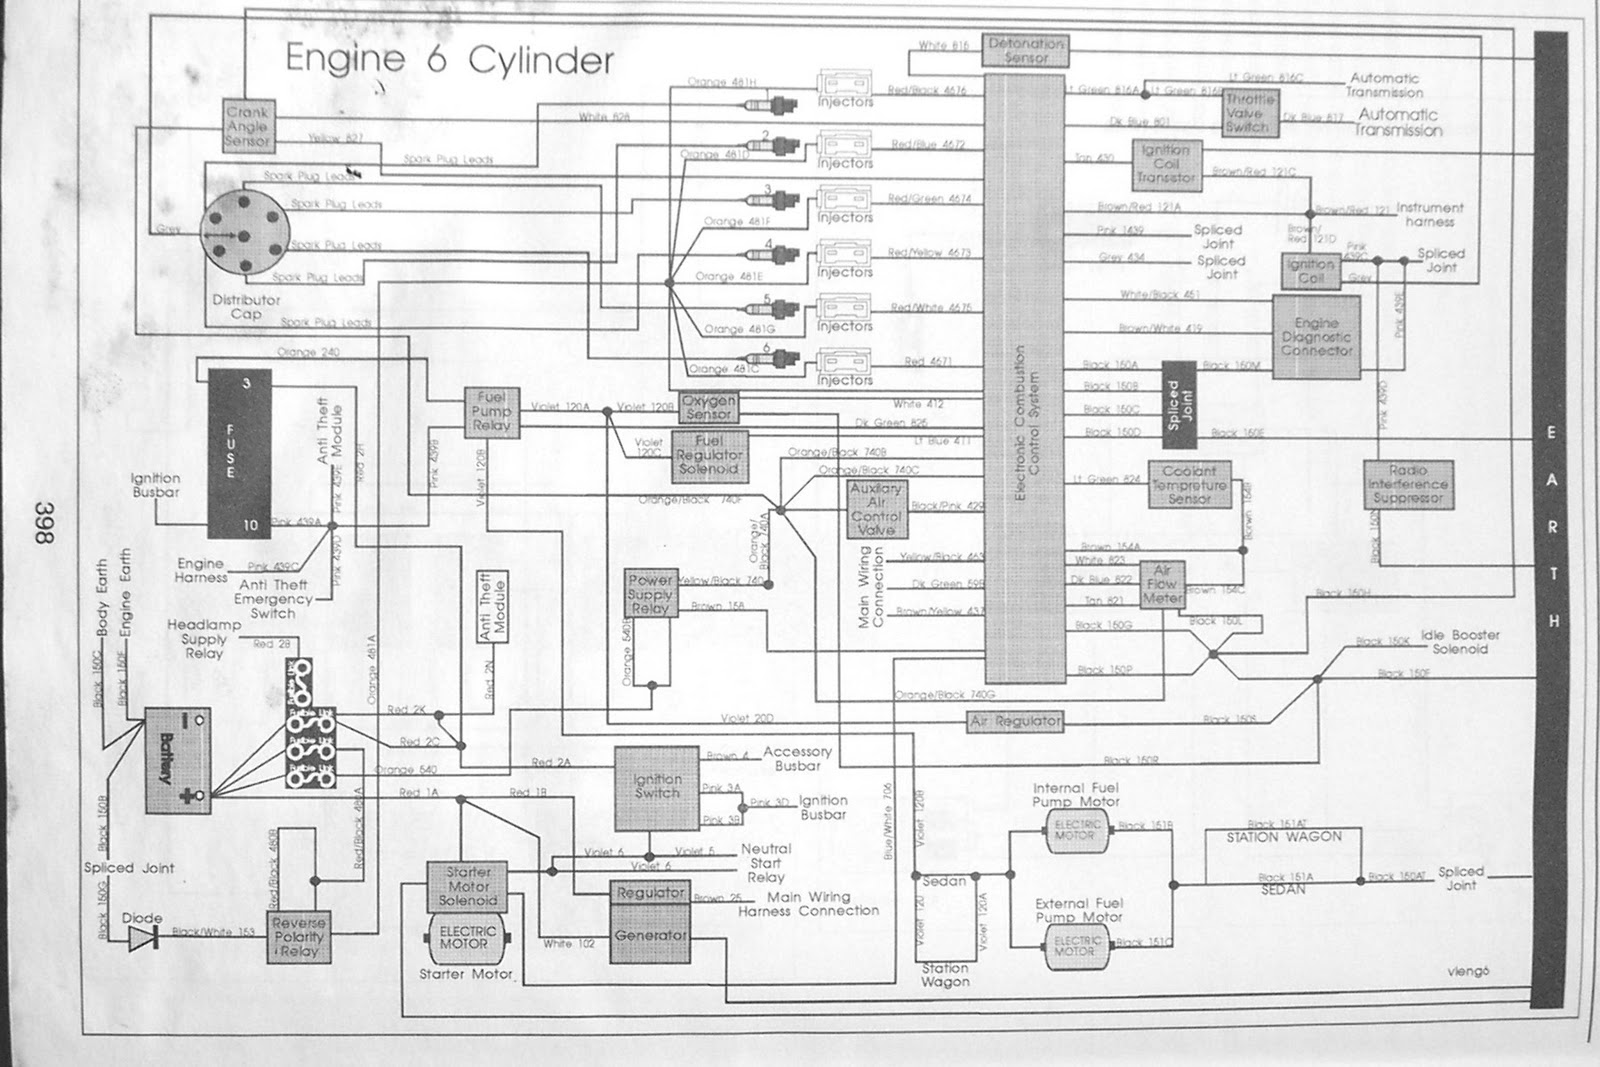 14b vt commodore wiring diagram efcaviation com vl commodore ecu wiring diagram at virtualis.co